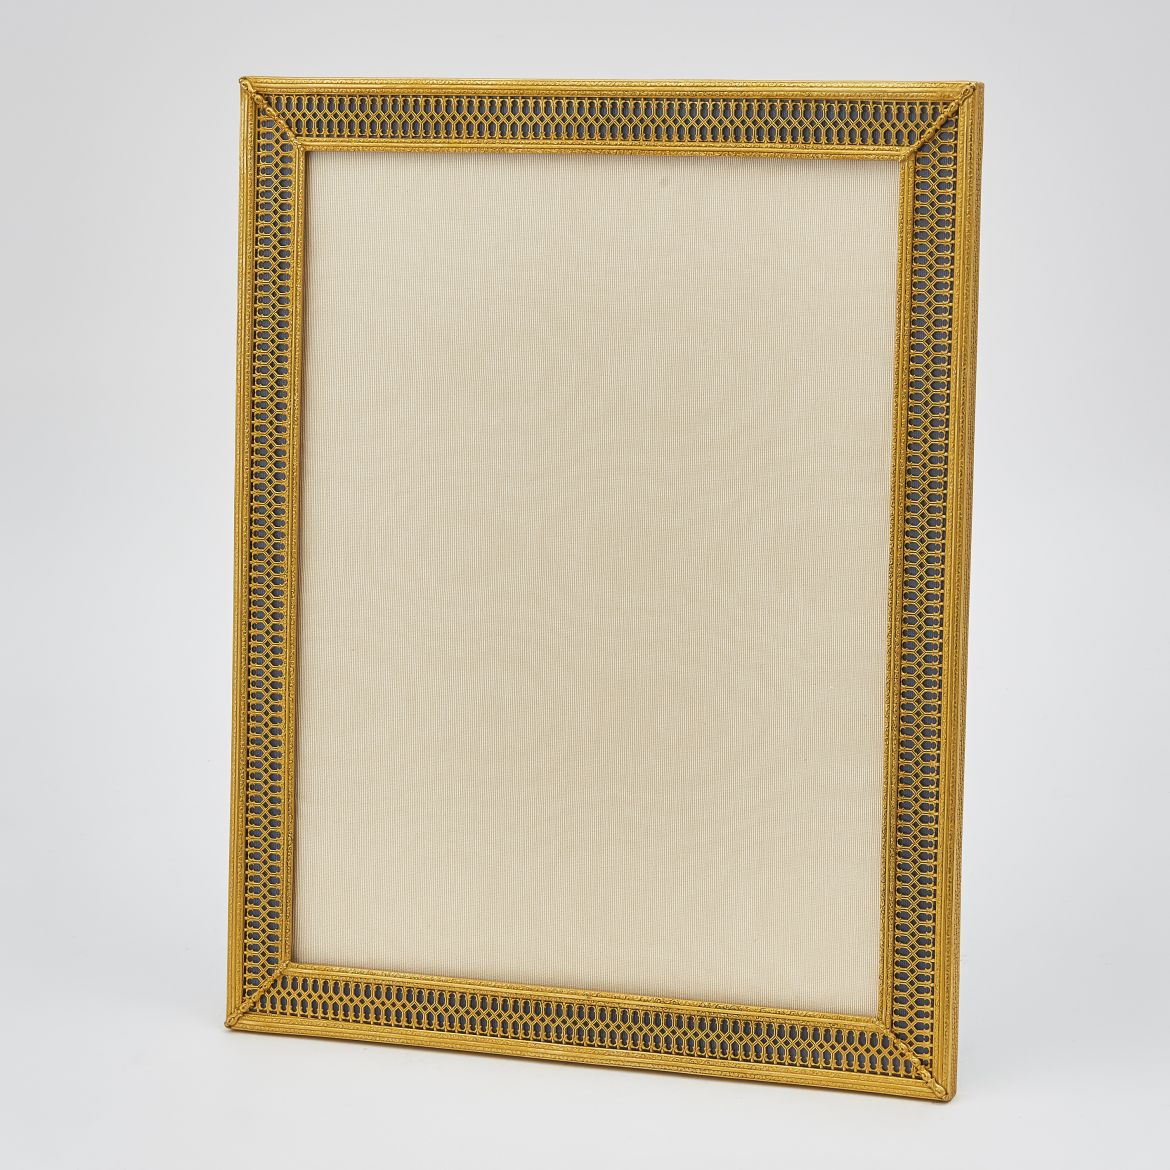 Gilt Bronze Frame With A Filigree Border